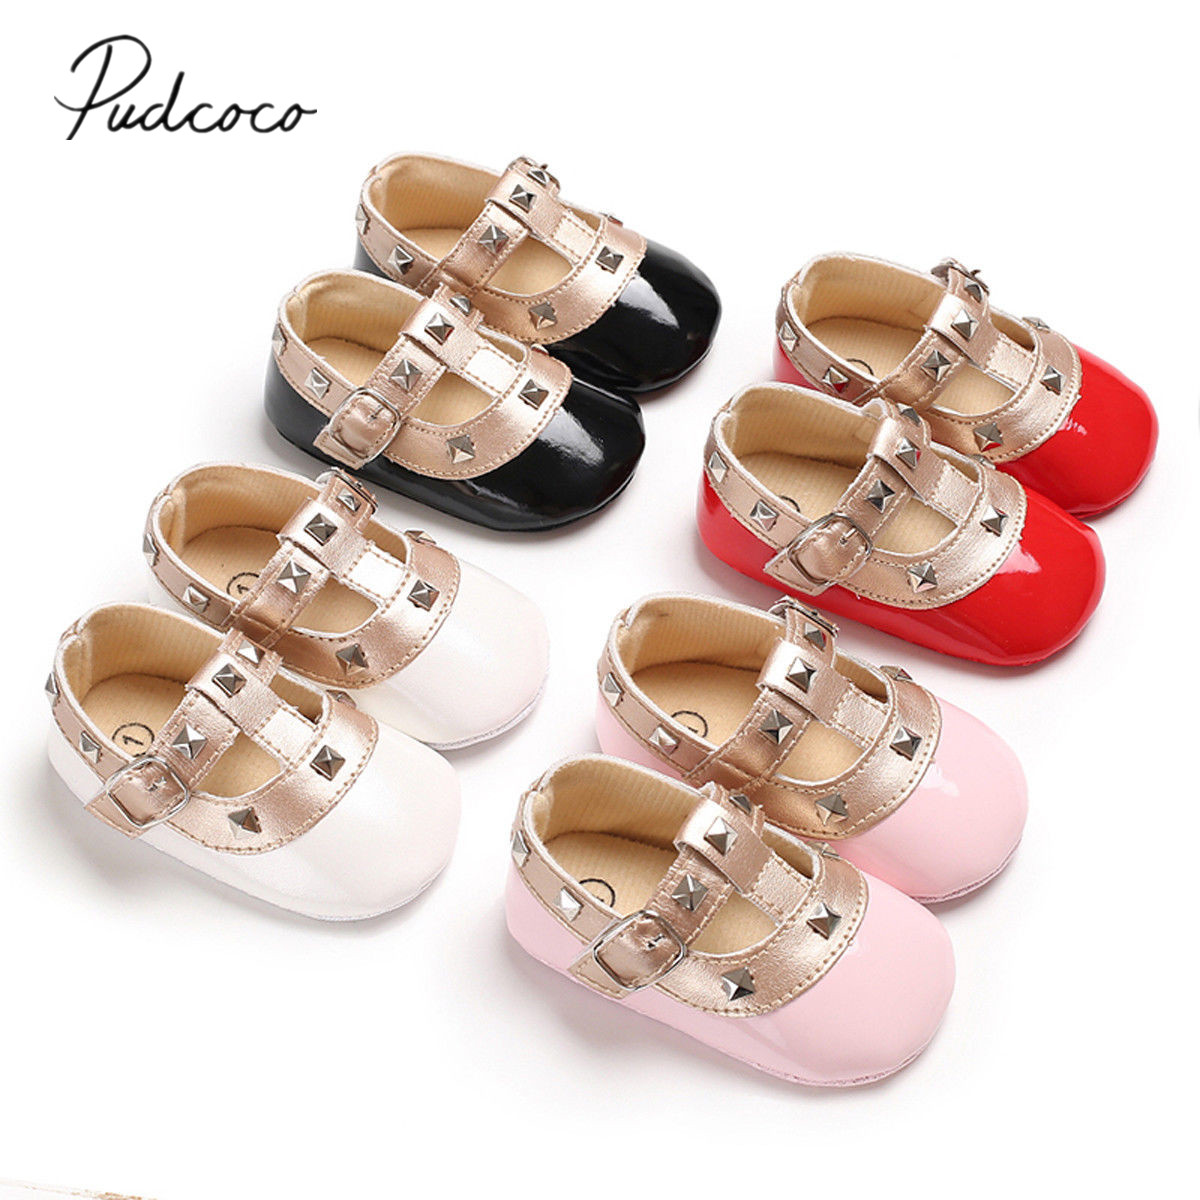 Newborn Baby Girl Bow Princess Shoes Soft Sole Crib Leather Solid Buckle Strap Flat With Heel Baby Shoes 4 Colors